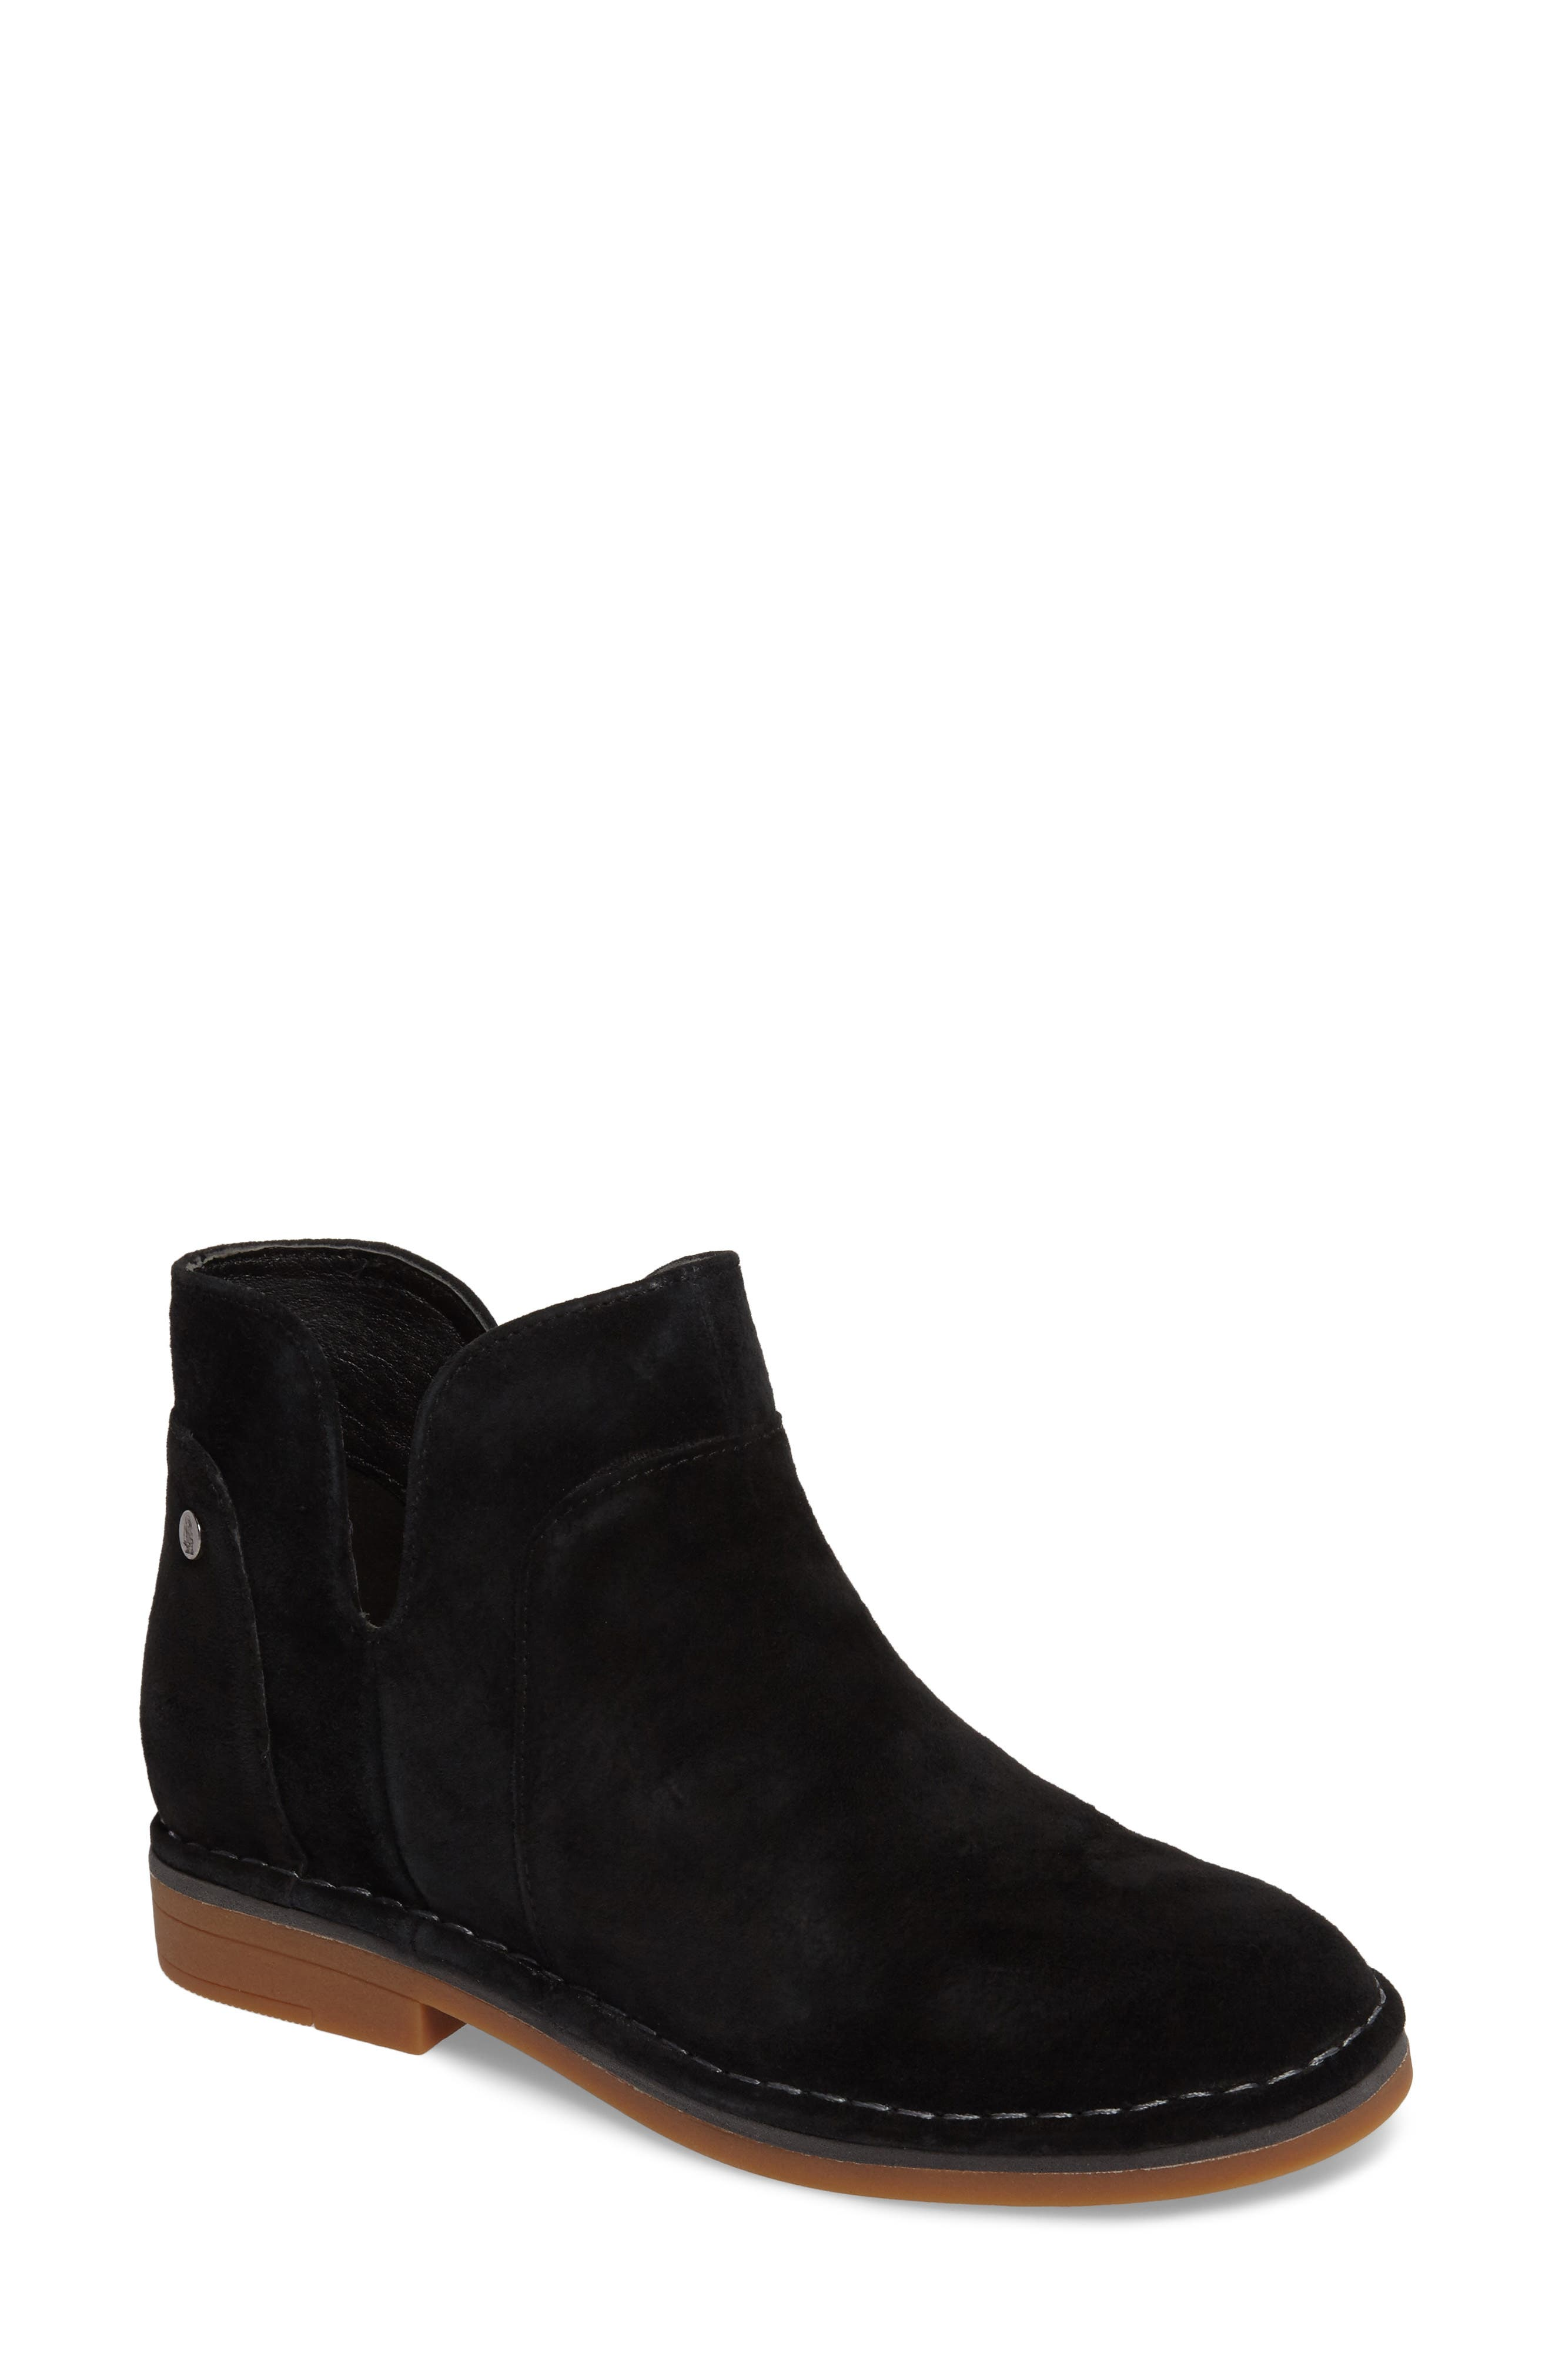 Claudia Catelyn Bootie,                         Main,                         color, 002